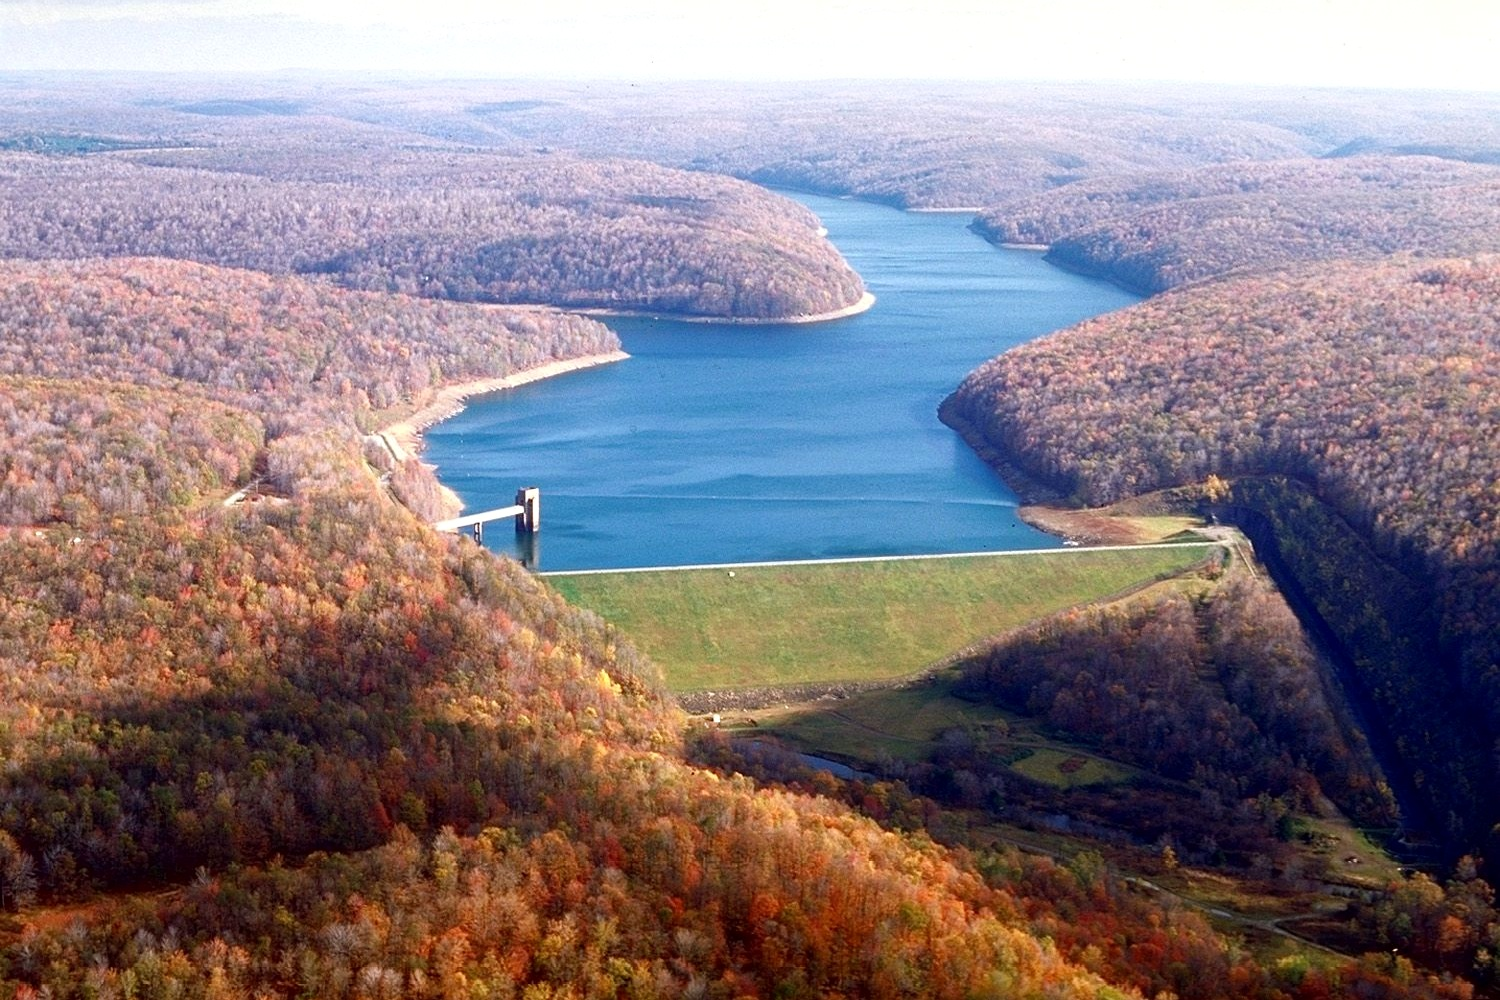 East Branch Clarion River Lake Dam - Photo Credit: Margaret Luzier, U.S. Army Corps of Engineers [Public domain], via Wikimedia Commons